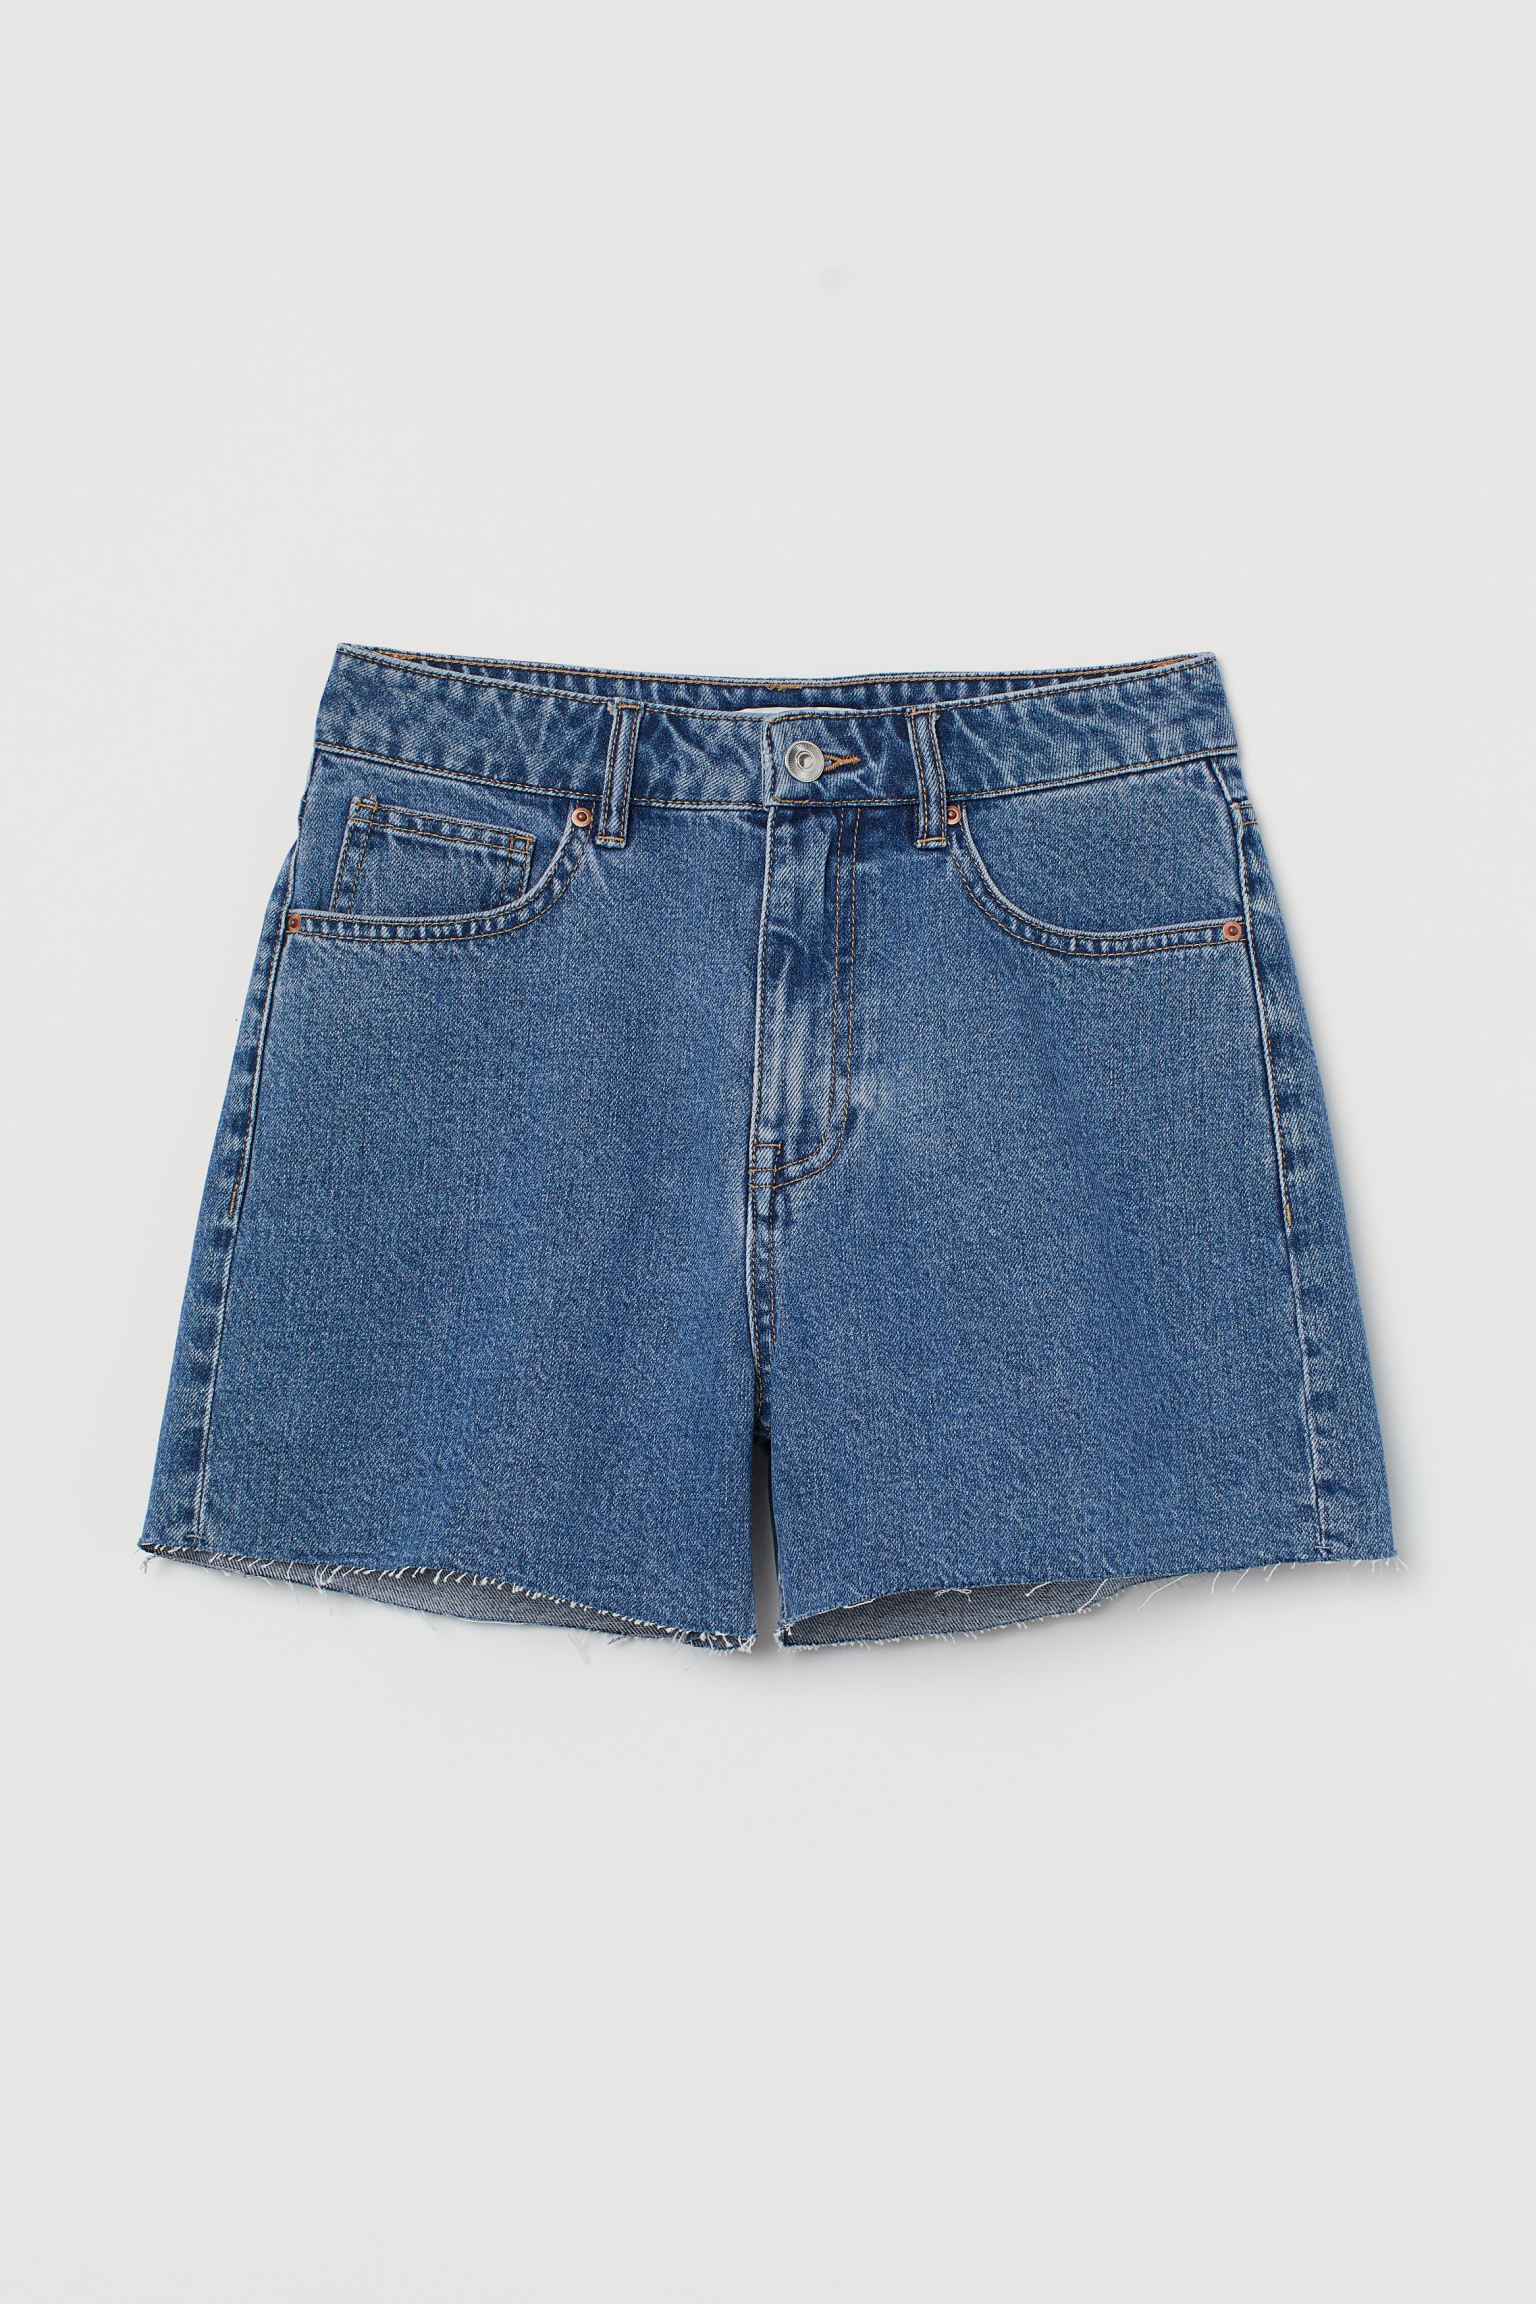 Denim shorts High Waist h&m